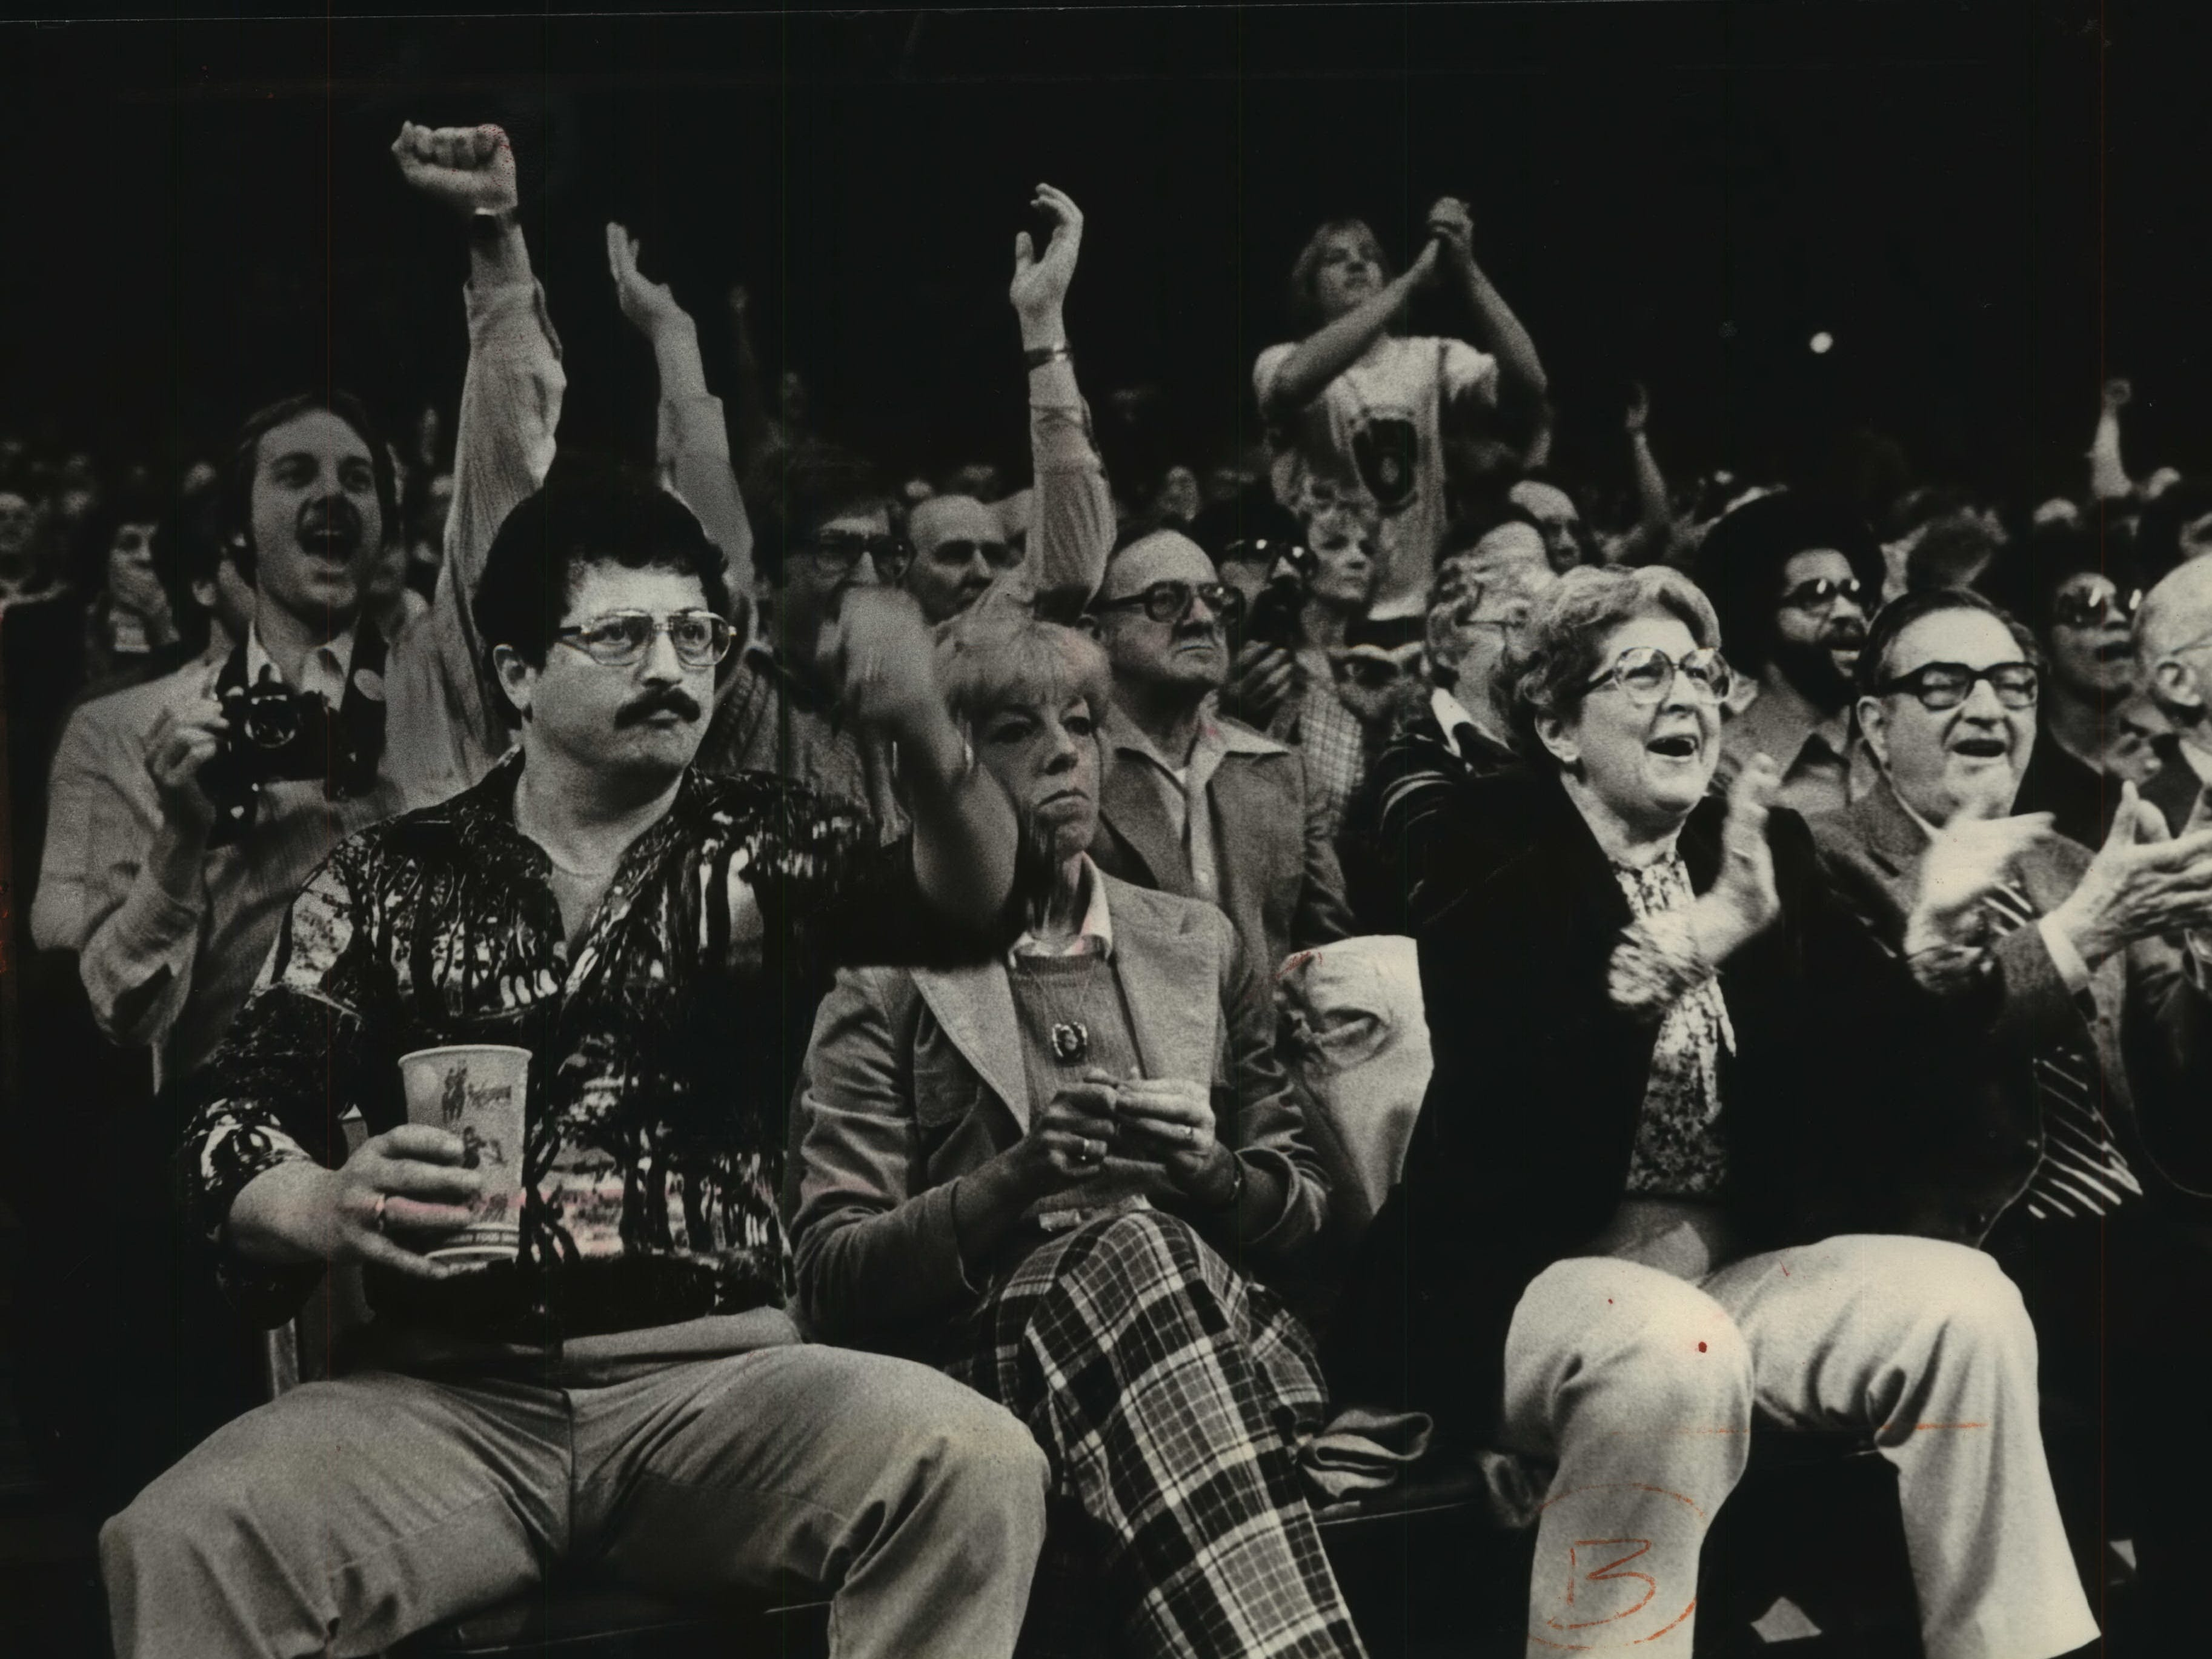 1980: Fans pack the 10,938-person-capacity Milwaukee Arena for a Western Conference Semifinals game between the Bucks and the Seattle Supersonics. Although the Bucks had a first-round bye, they lost to the Sonics in seven games. This photo was published in the April 13, 1980, Milwaukee Journal.